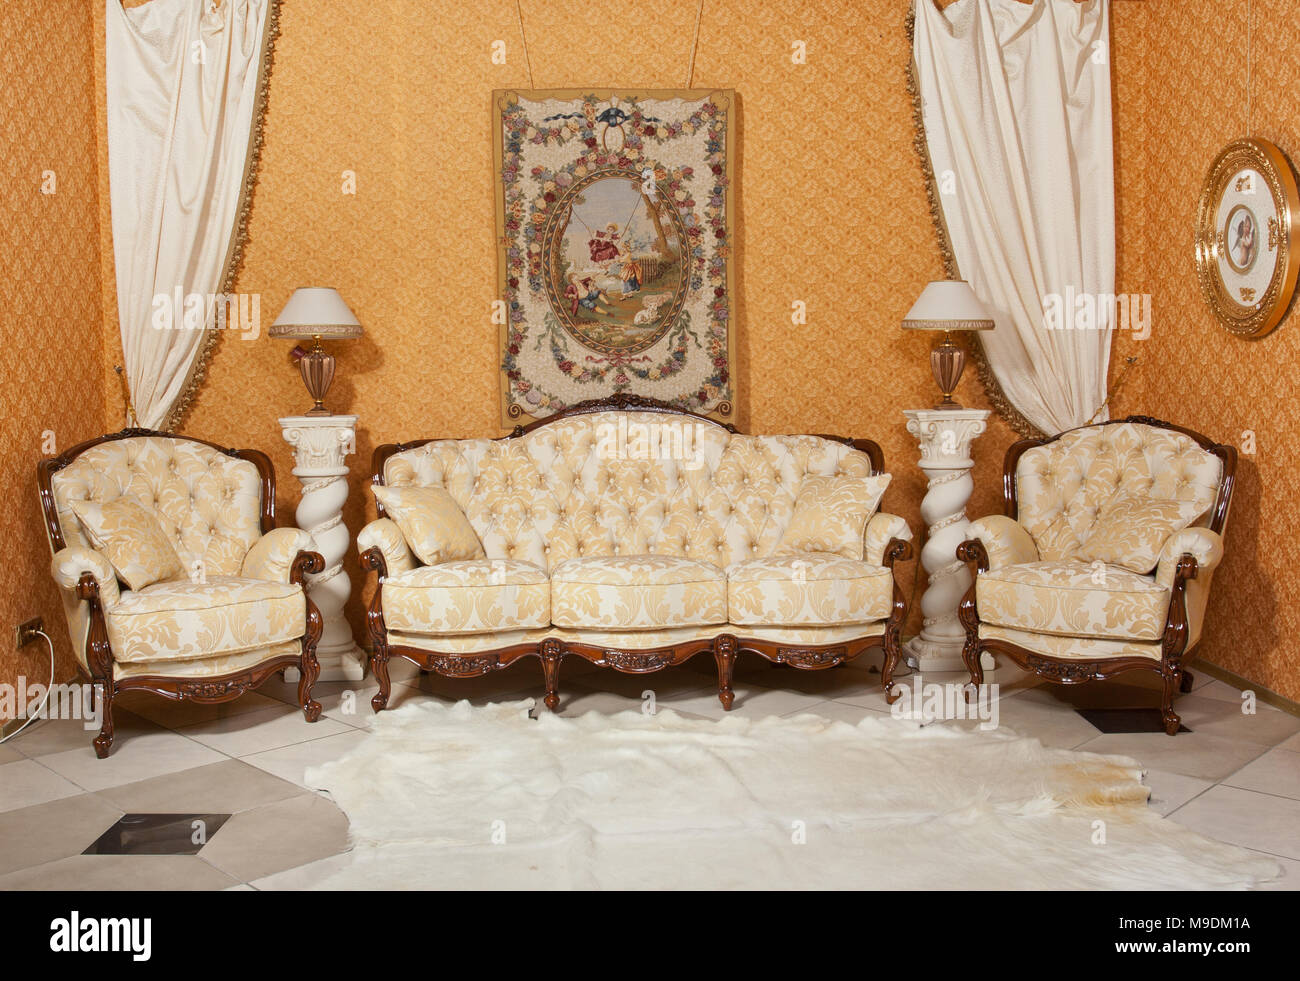 Empty Interior Living Room Background In Warm Colors Decorated With